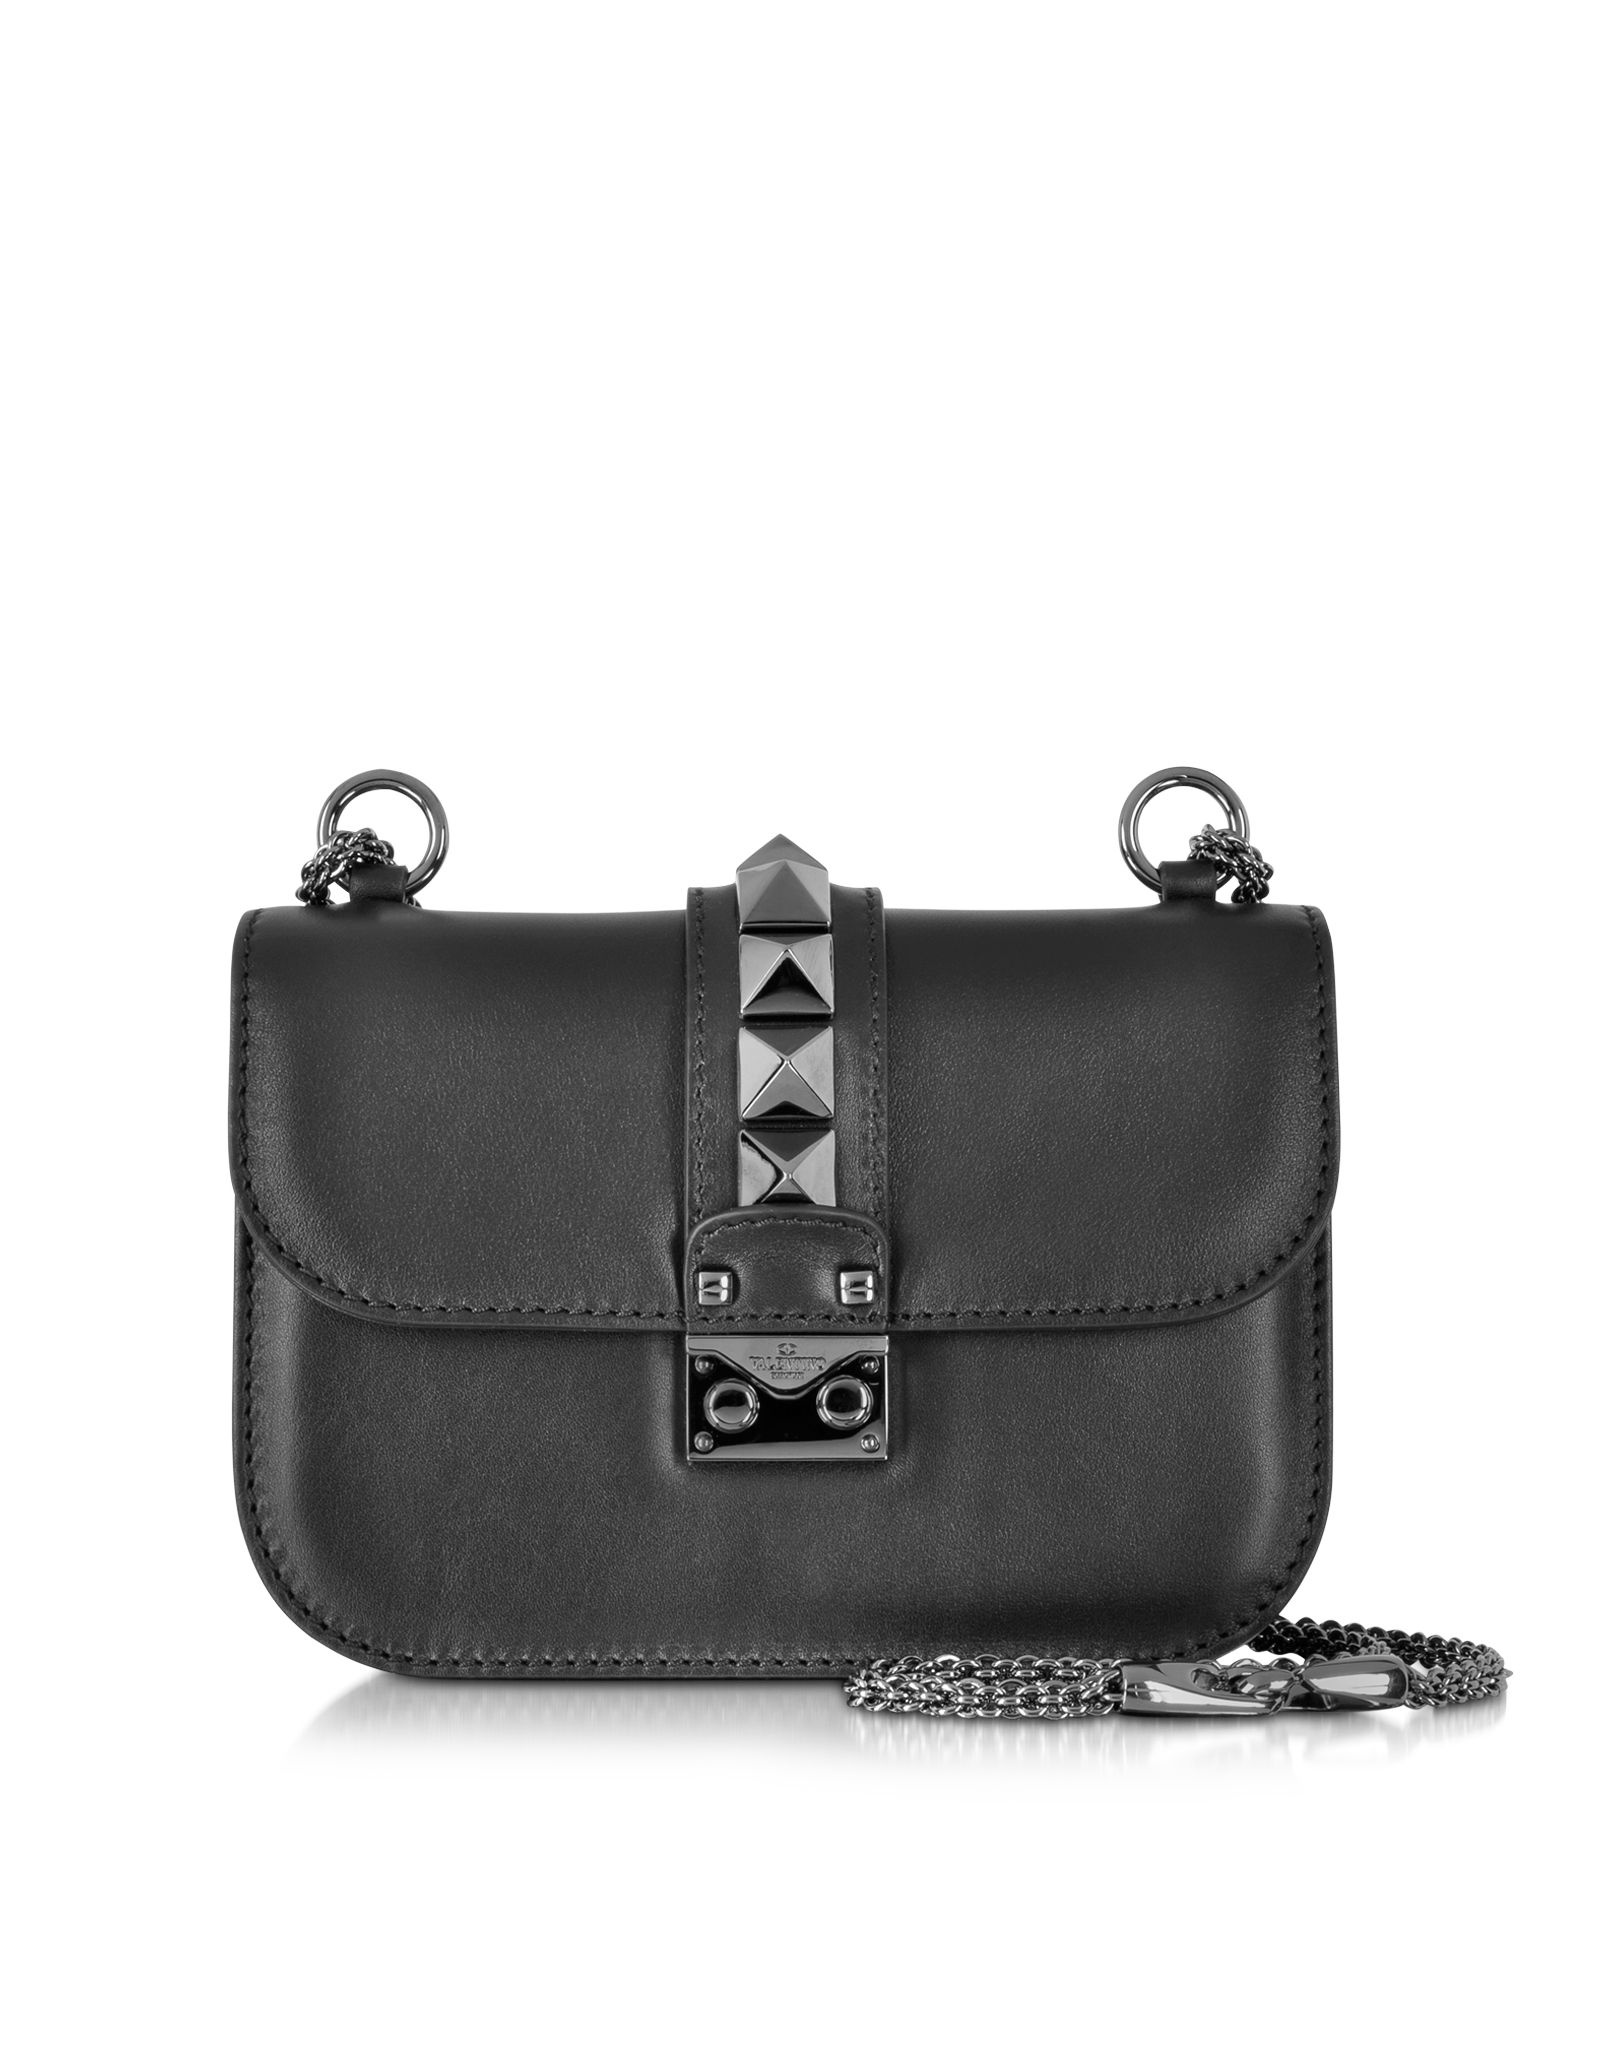 3bc76ac50ce4 Valentino Noir Small Chain Shoulder Bag at FORZIERI